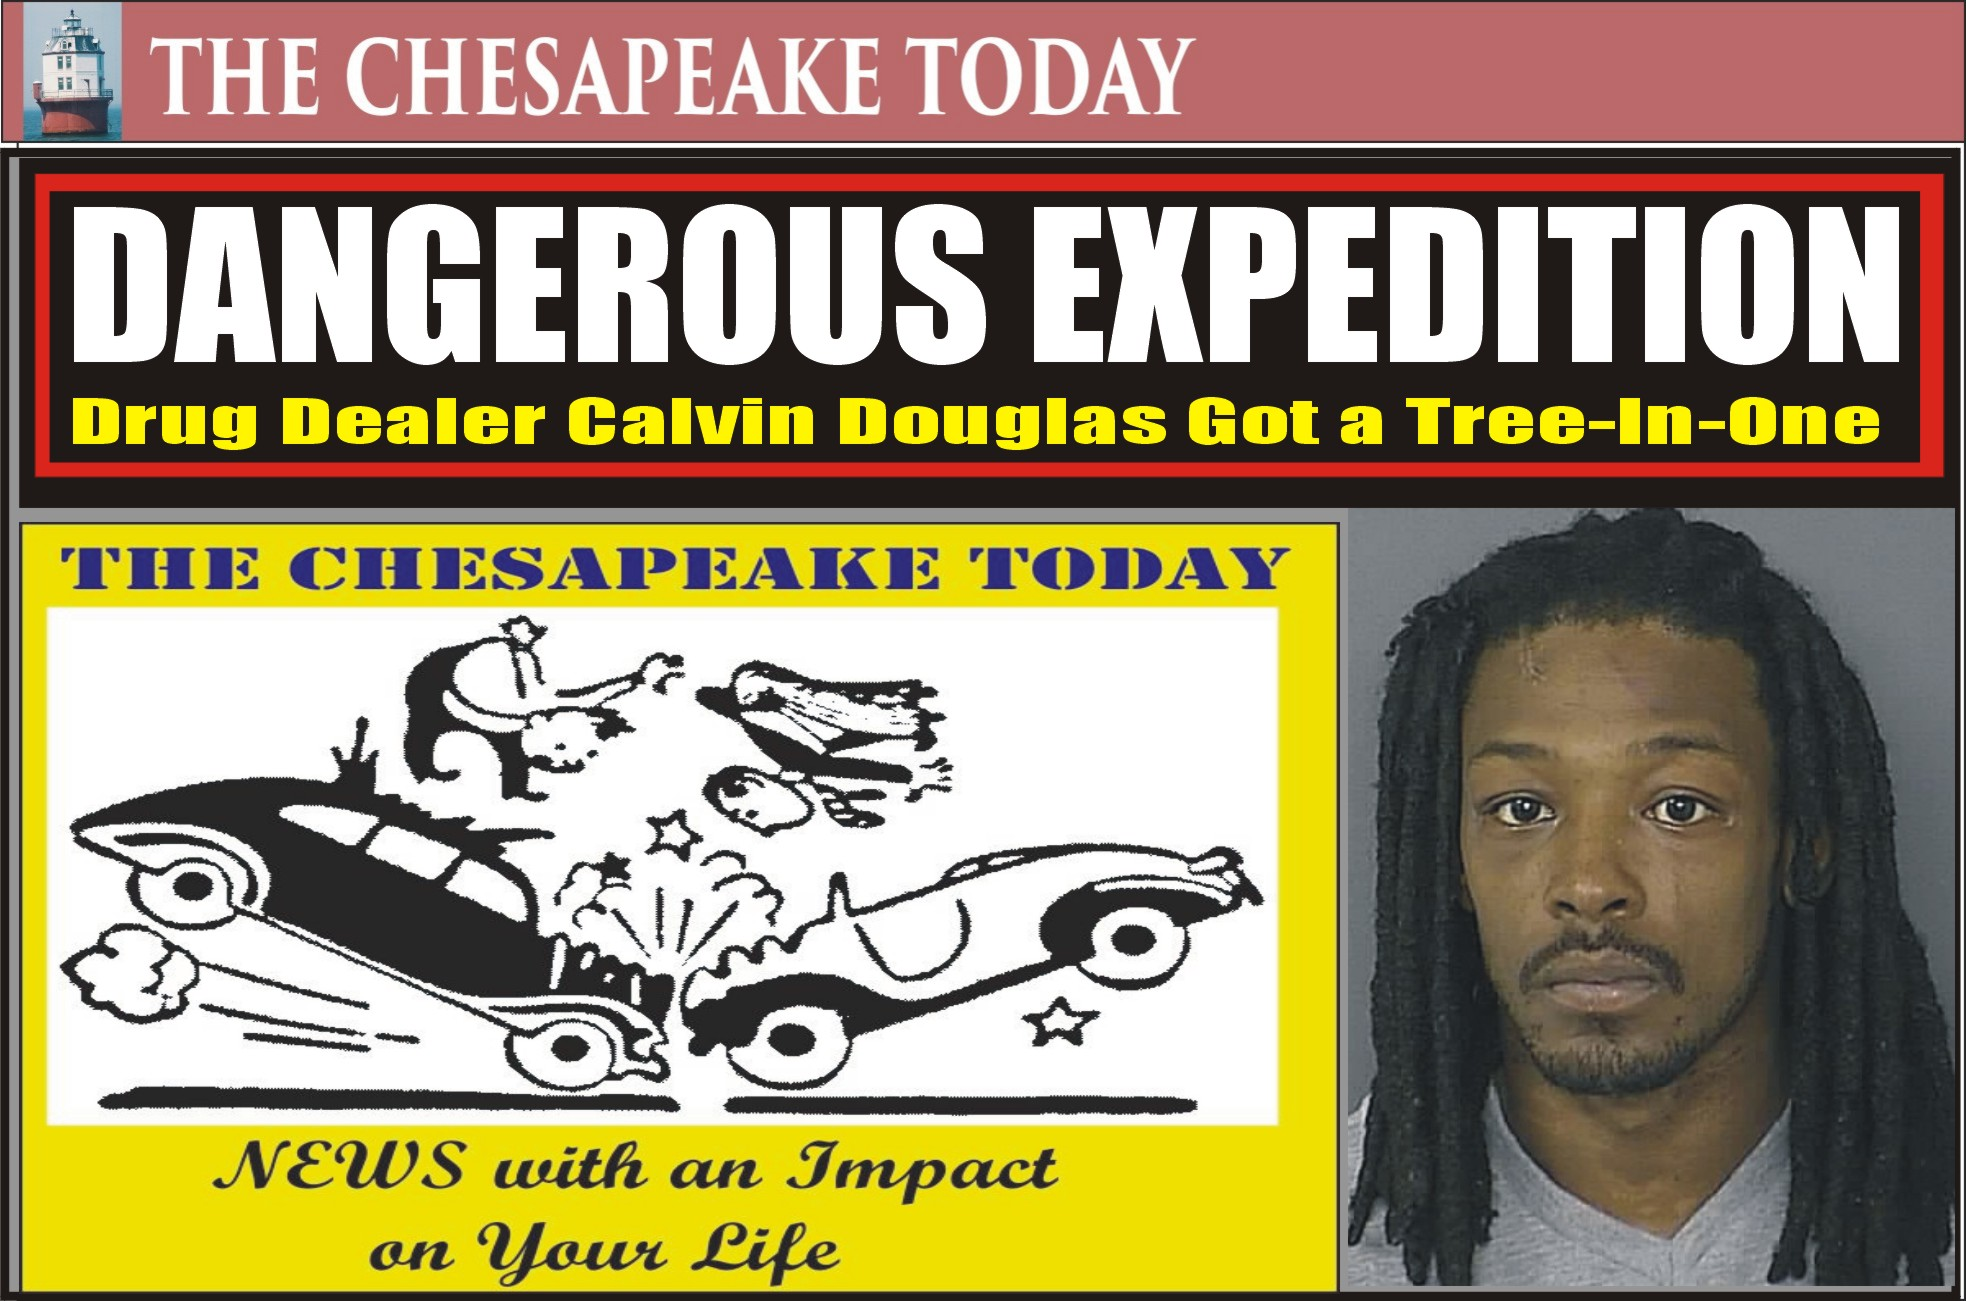 DWI HIT PARADE: Drug dealer Calvin Douglas slammed into tree sending two passengers flying to trauma units